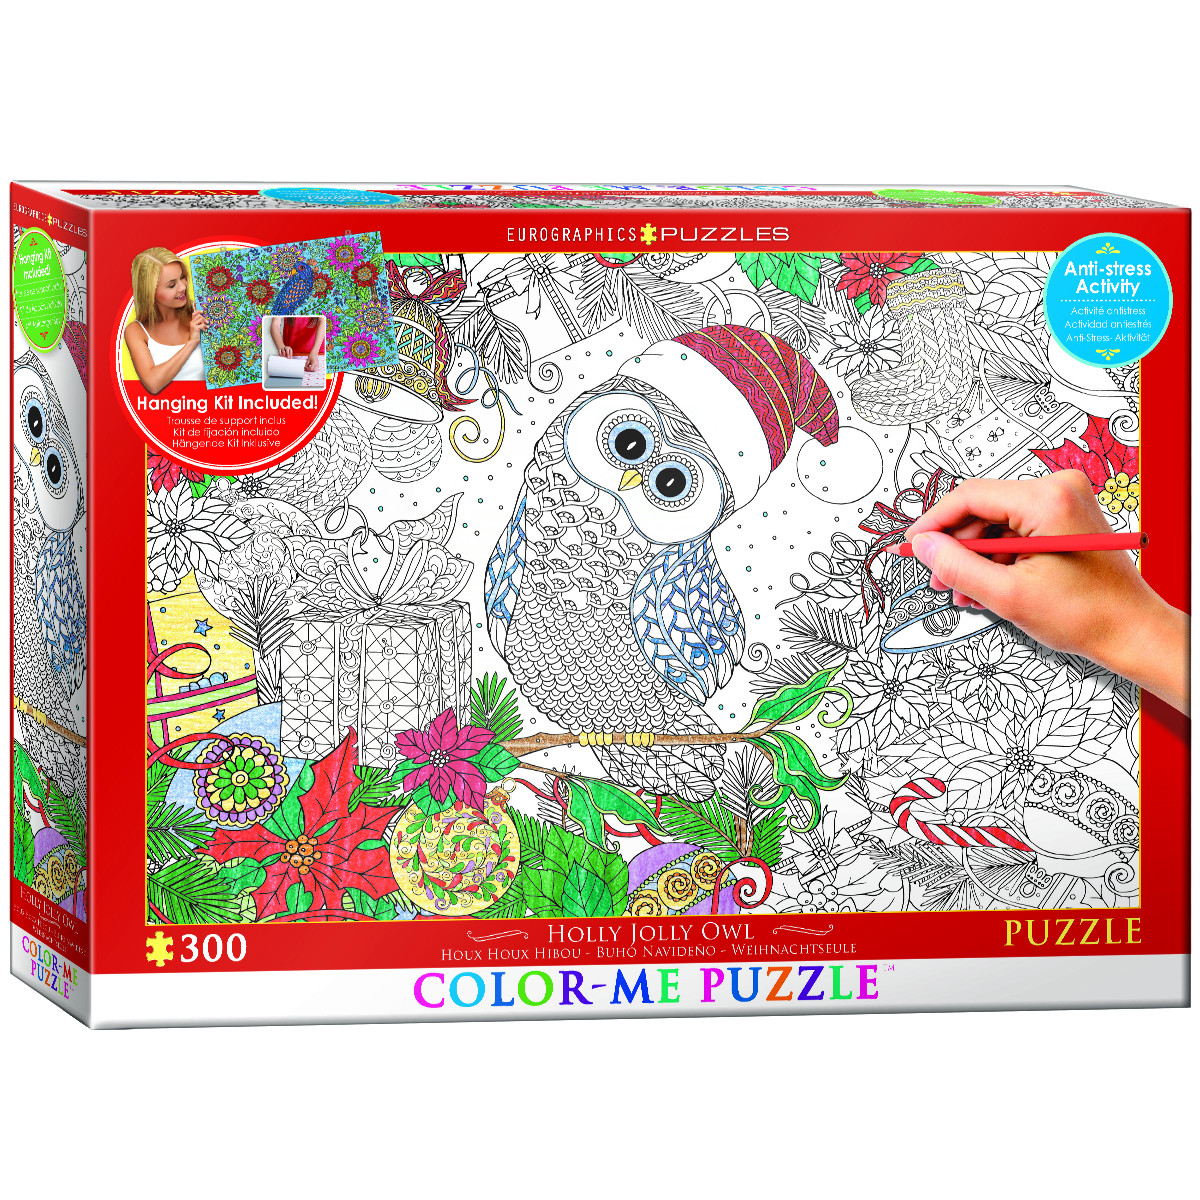 Holly Jolly Owl Birds Jigsaw Puzzle